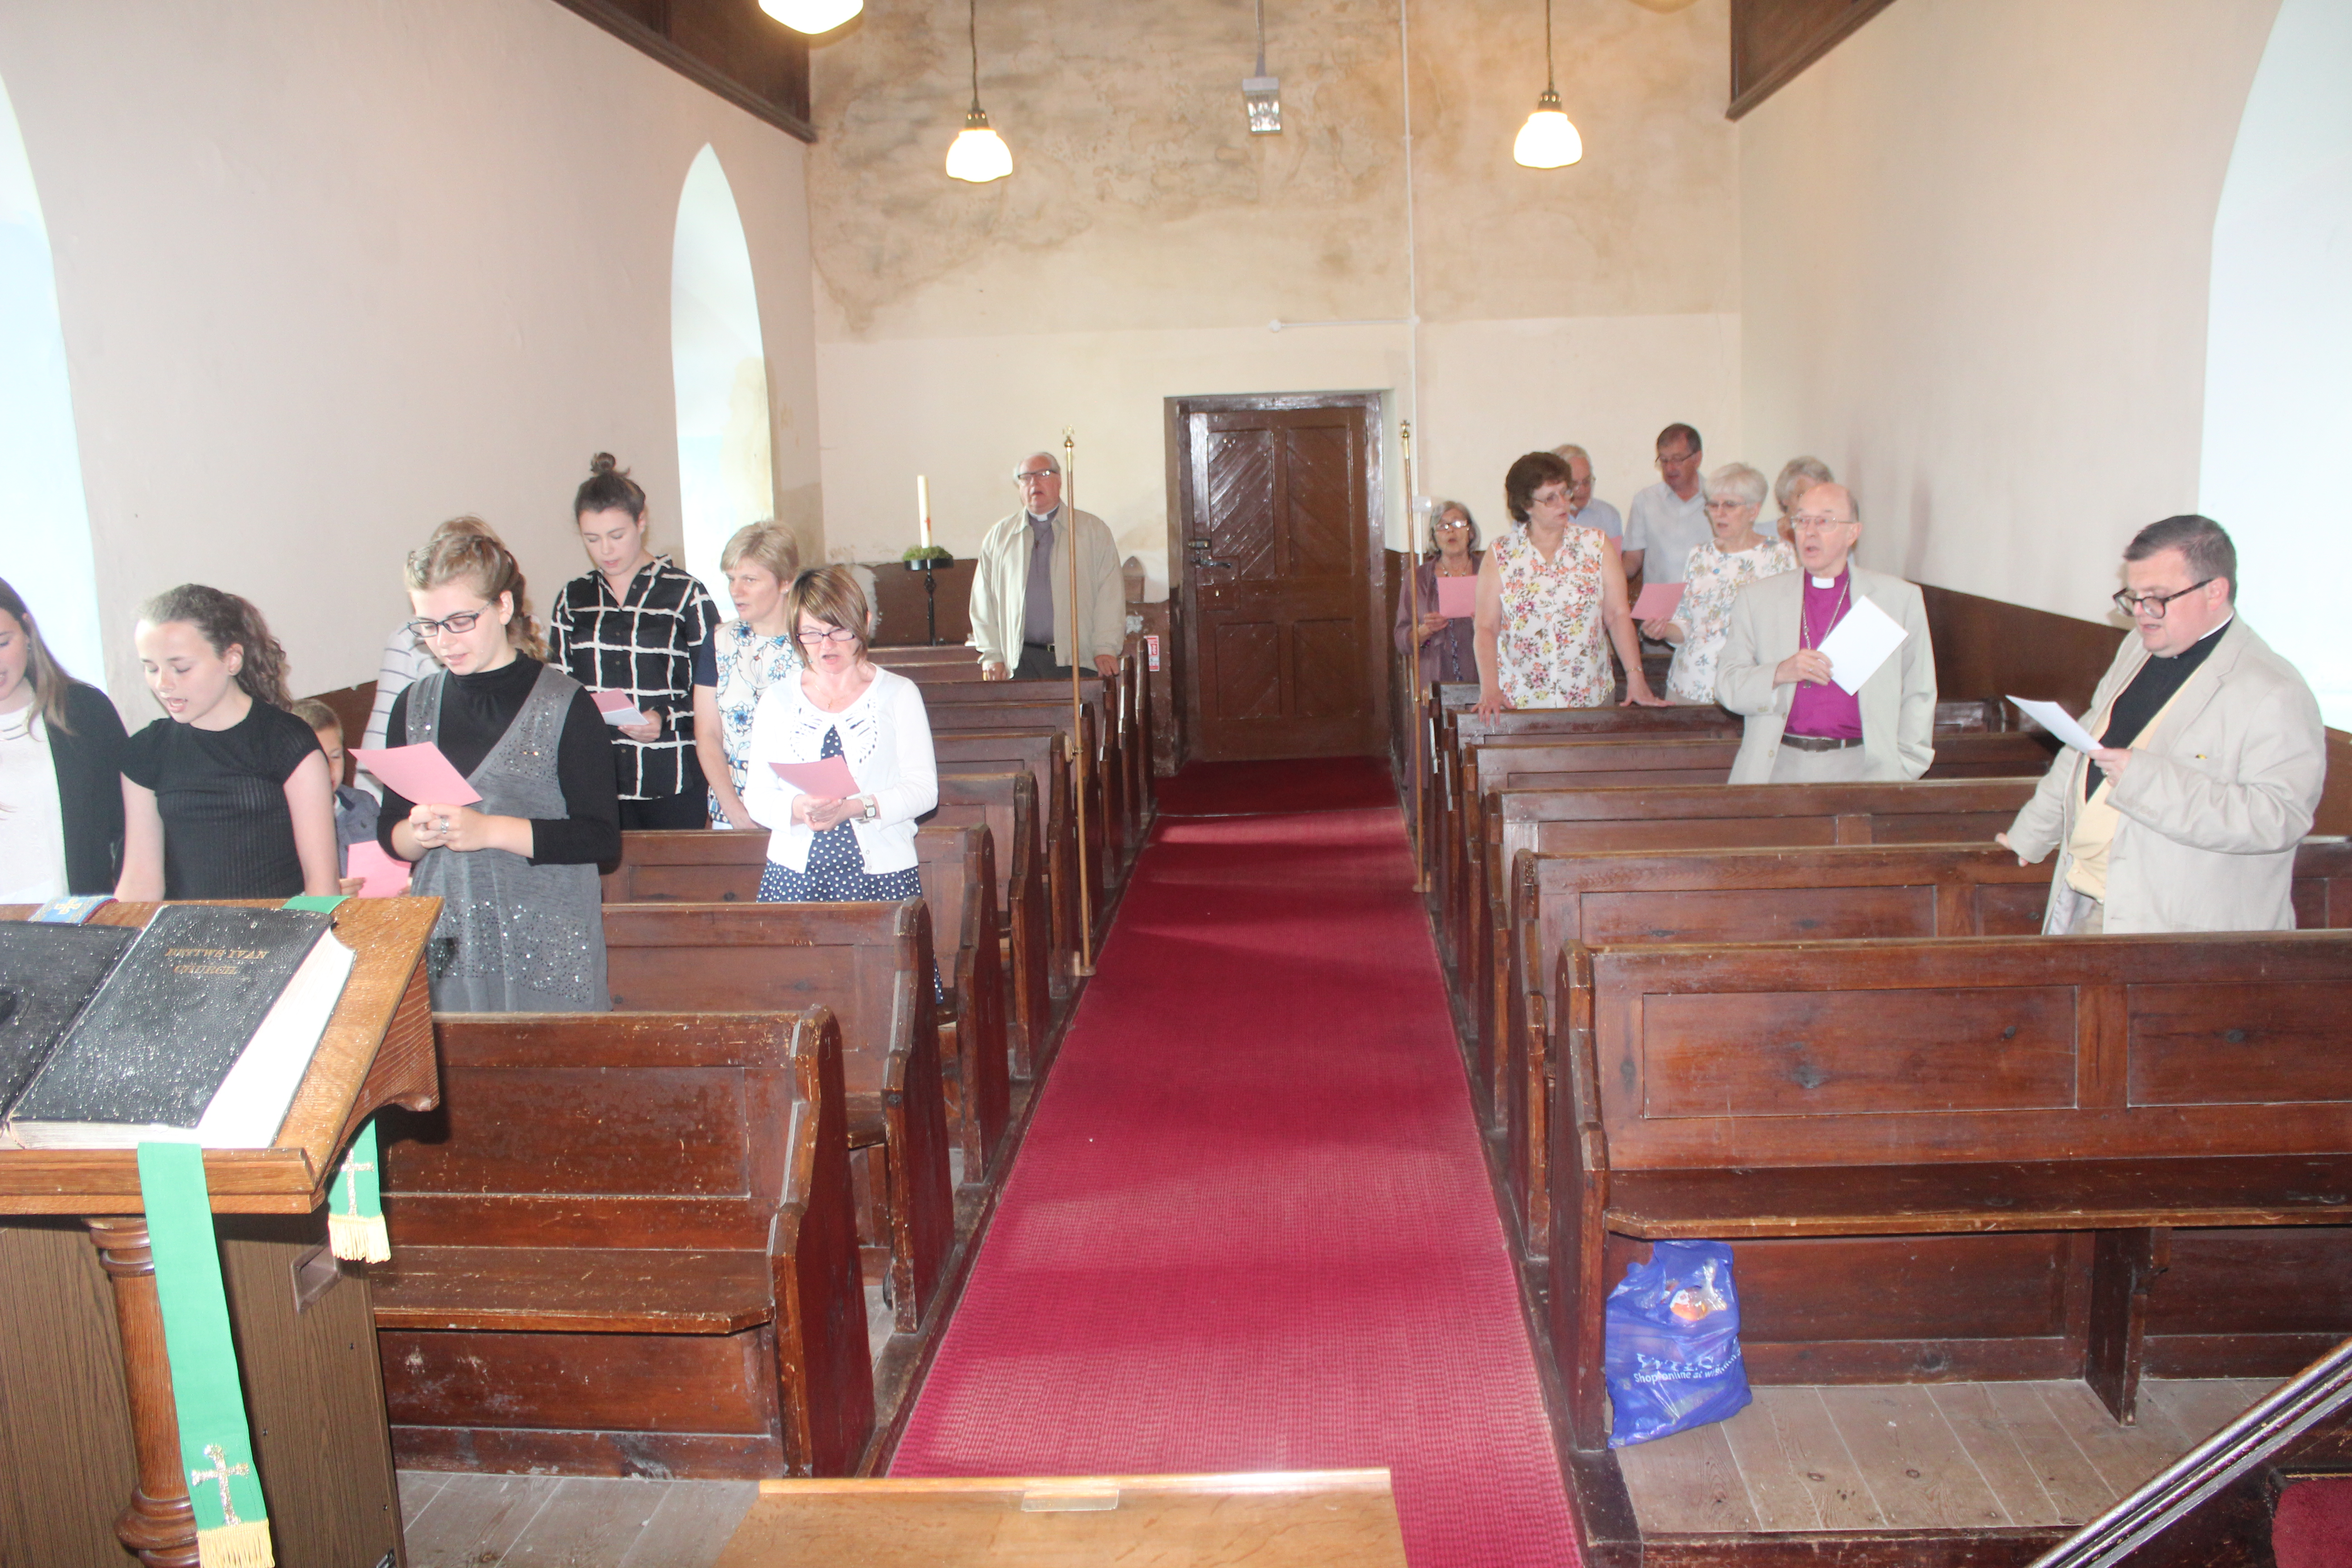 ...the youngsters lead the service